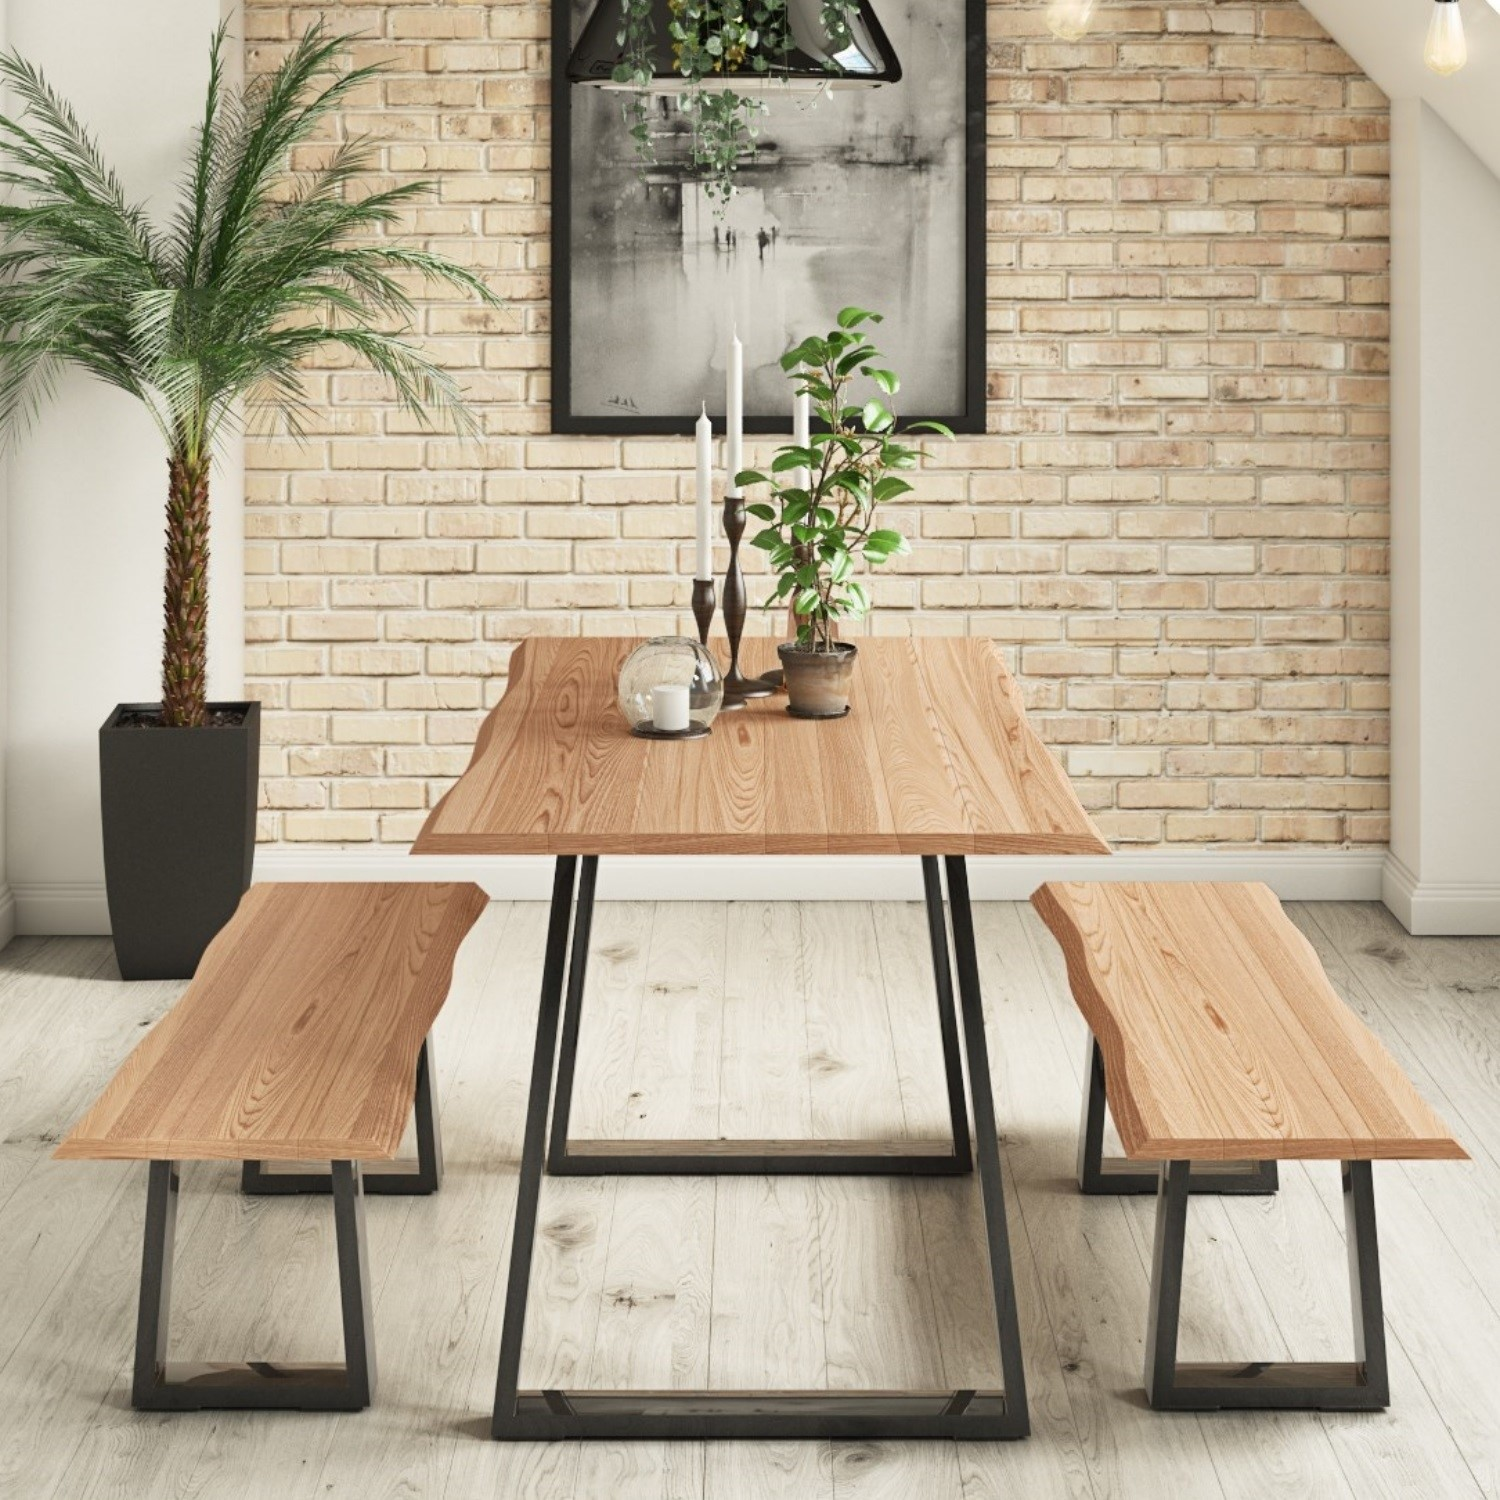 Prime Industrial Dining Table Set In Solid Wood With 2 Dining Creativecarmelina Interior Chair Design Creativecarmelinacom